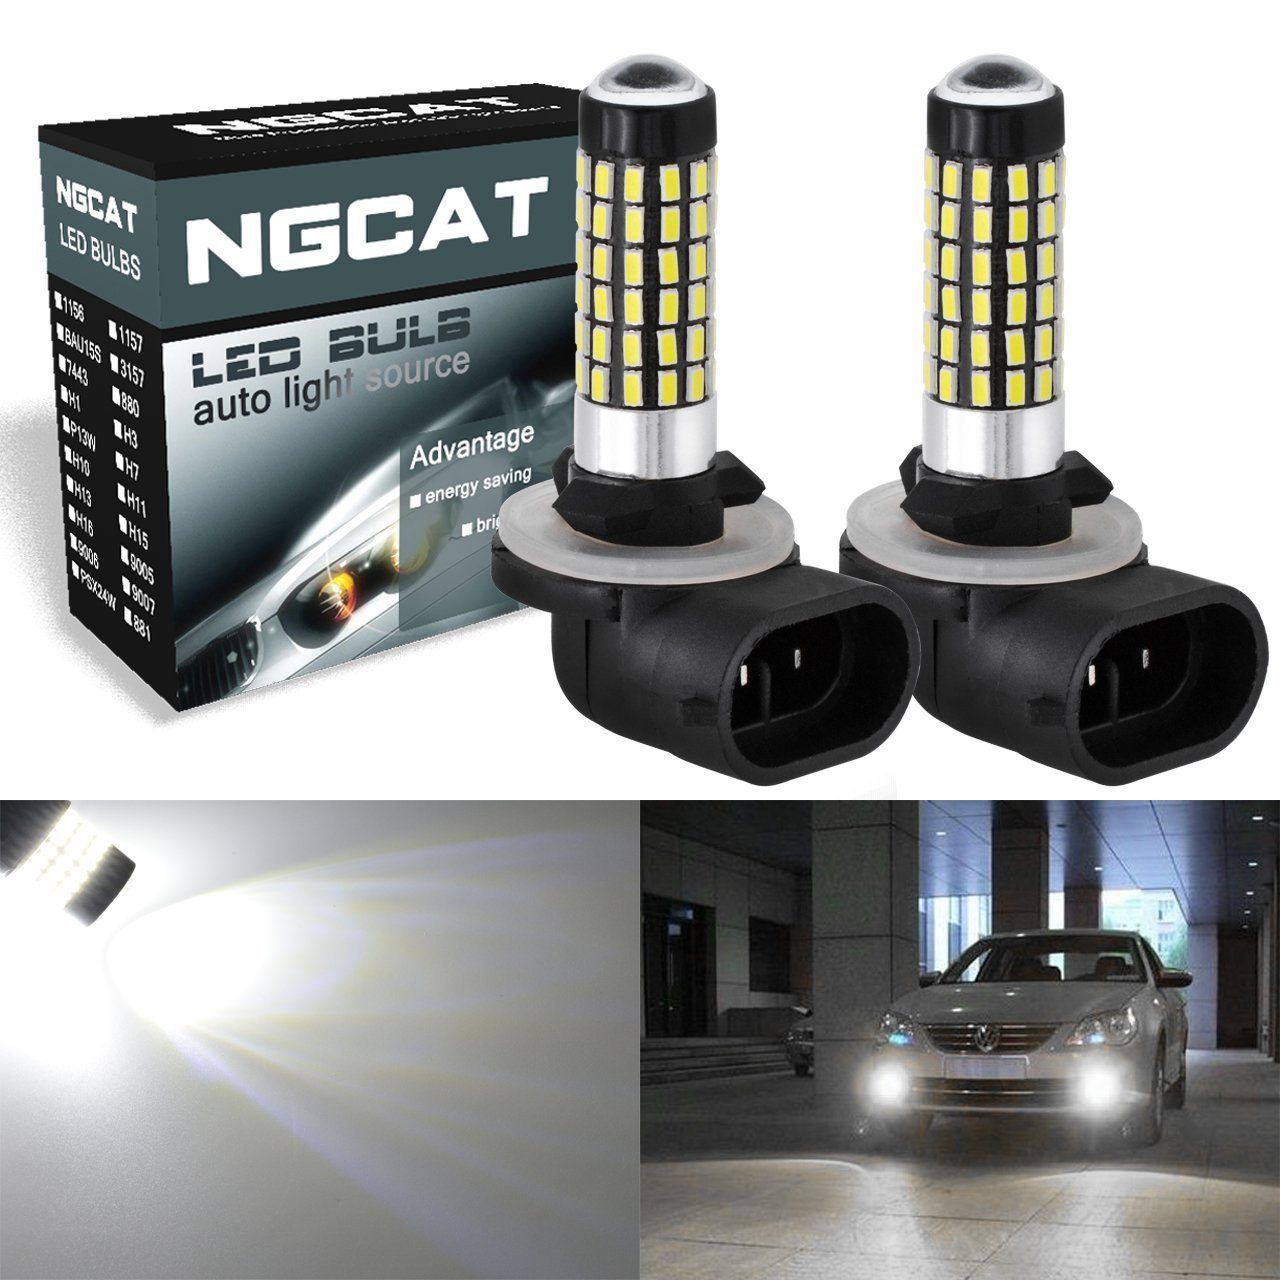 NGCAT 2PCS 881 894 886 889 896 898 LED Bulbs 900 Lumens 3014SMD 78-EX Chipsets with Lens Projector Used for Fog Light Daytime Running Light Automotive Driving Lamp,Xenon White 6500K,12-24V 4W